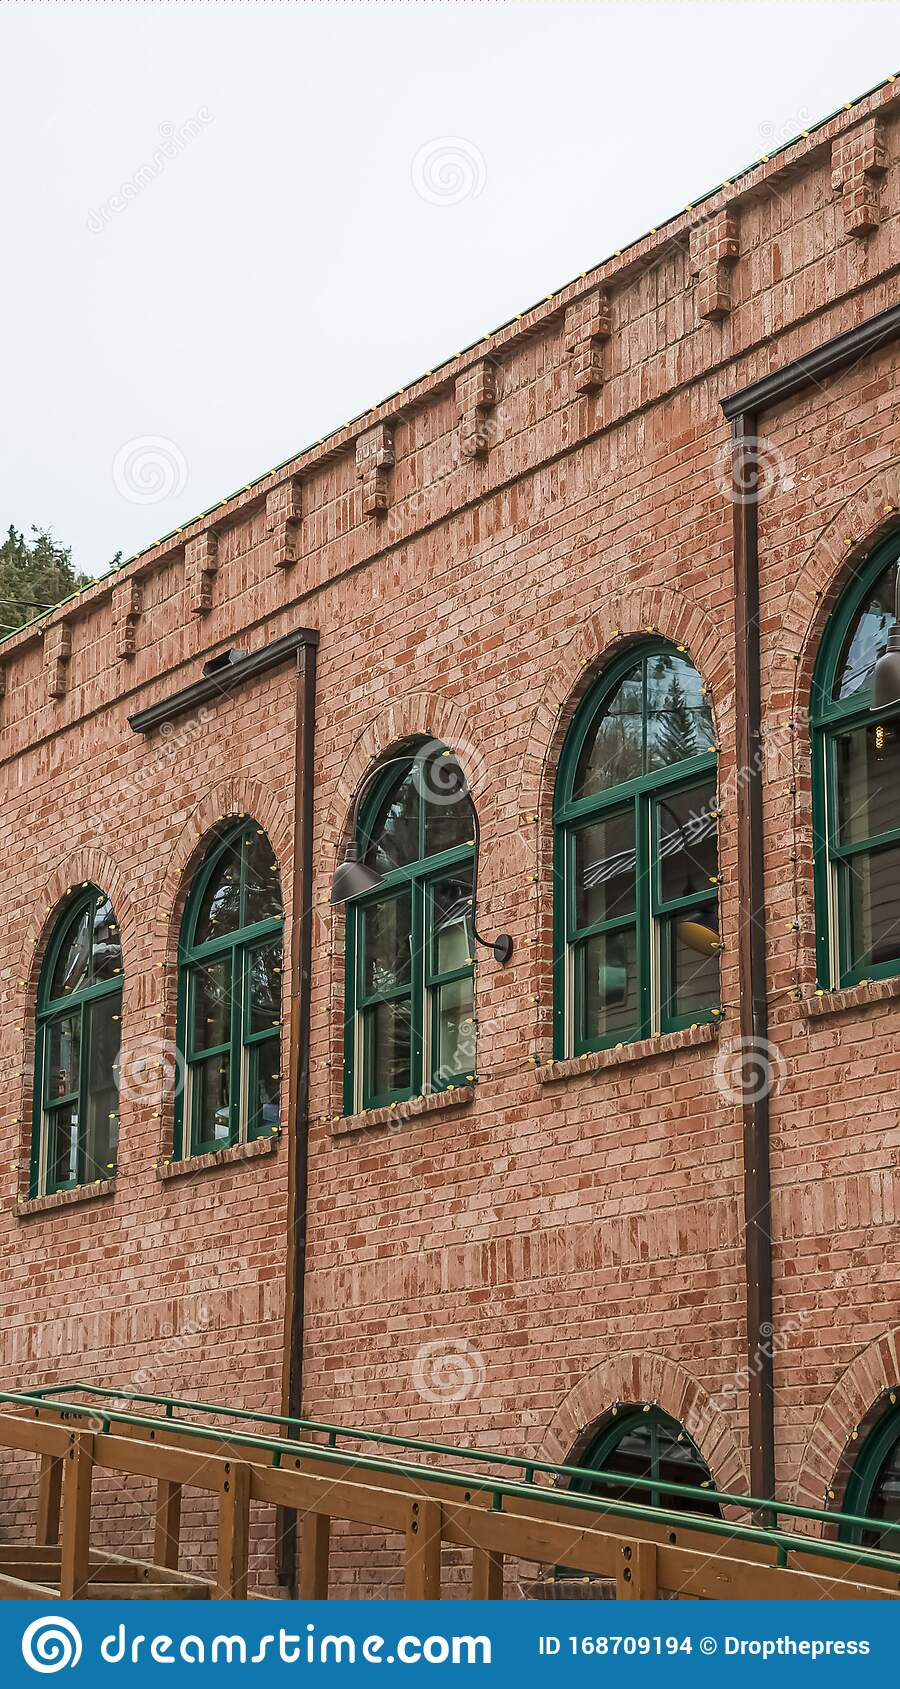 Vertical Frame Restaurant Exterior In Park City With Red Brick Wall And Green Arched Windows Stock Photo Image Of Clouds Snow 168709194